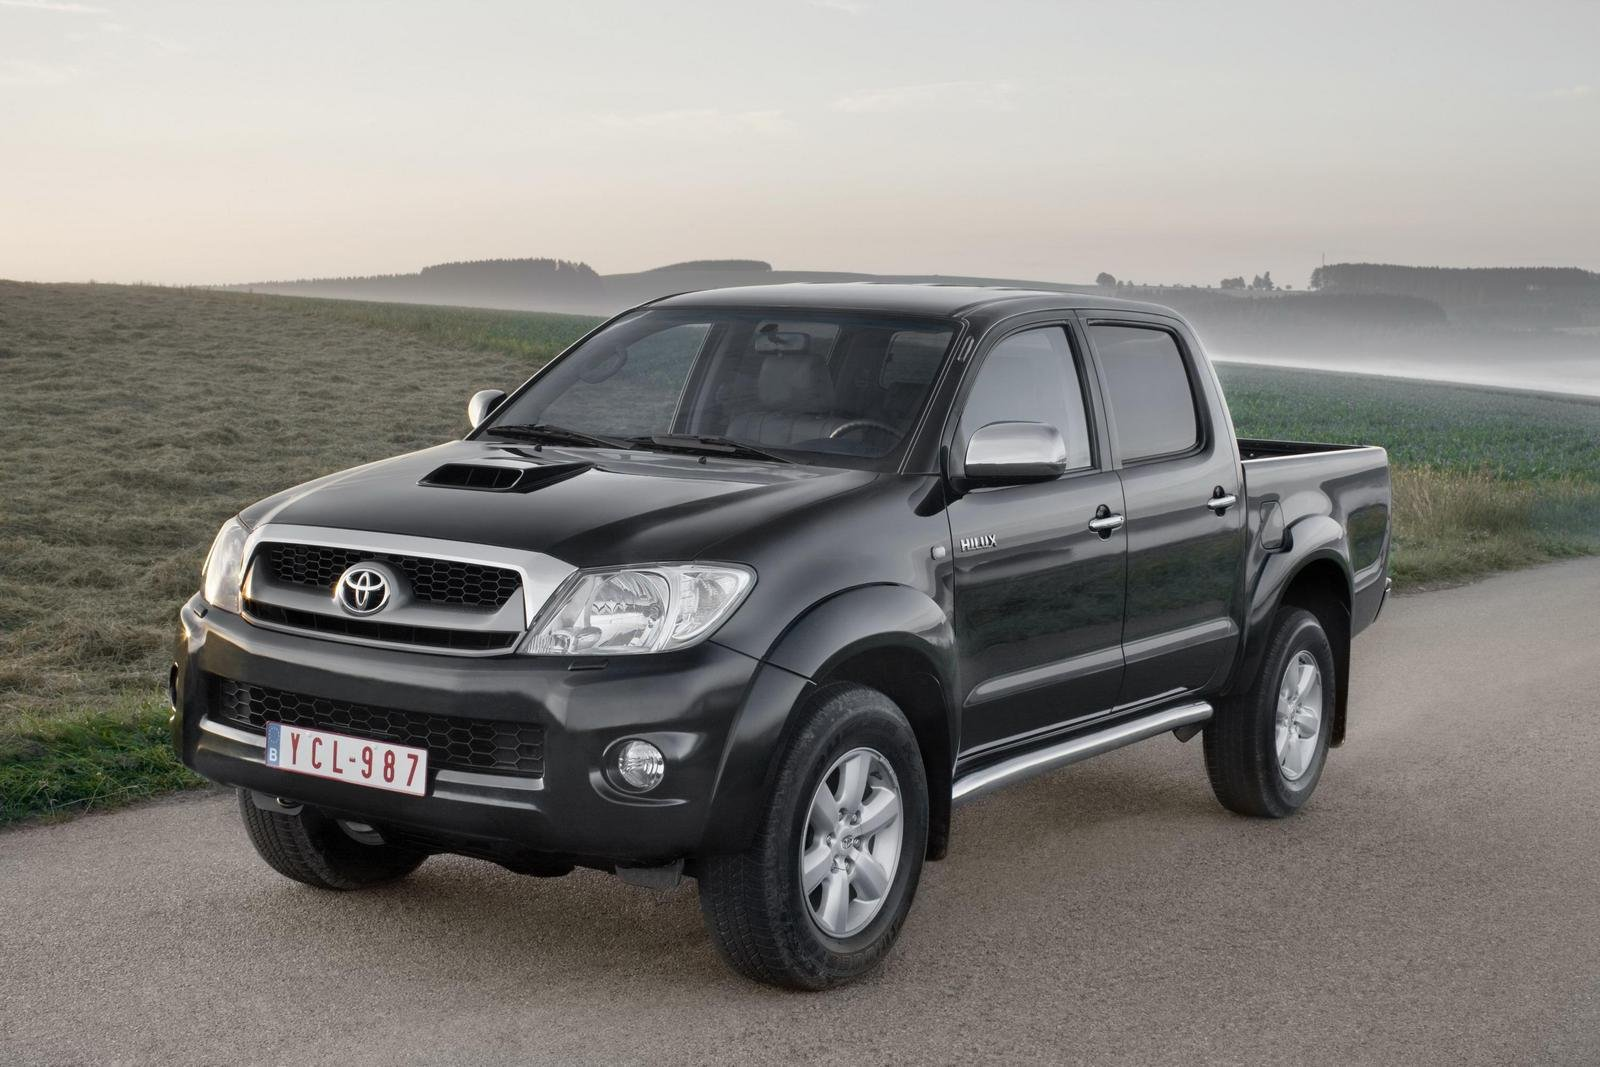 2009 Toyota Hilux Picture 262248 Car Review Top Speed